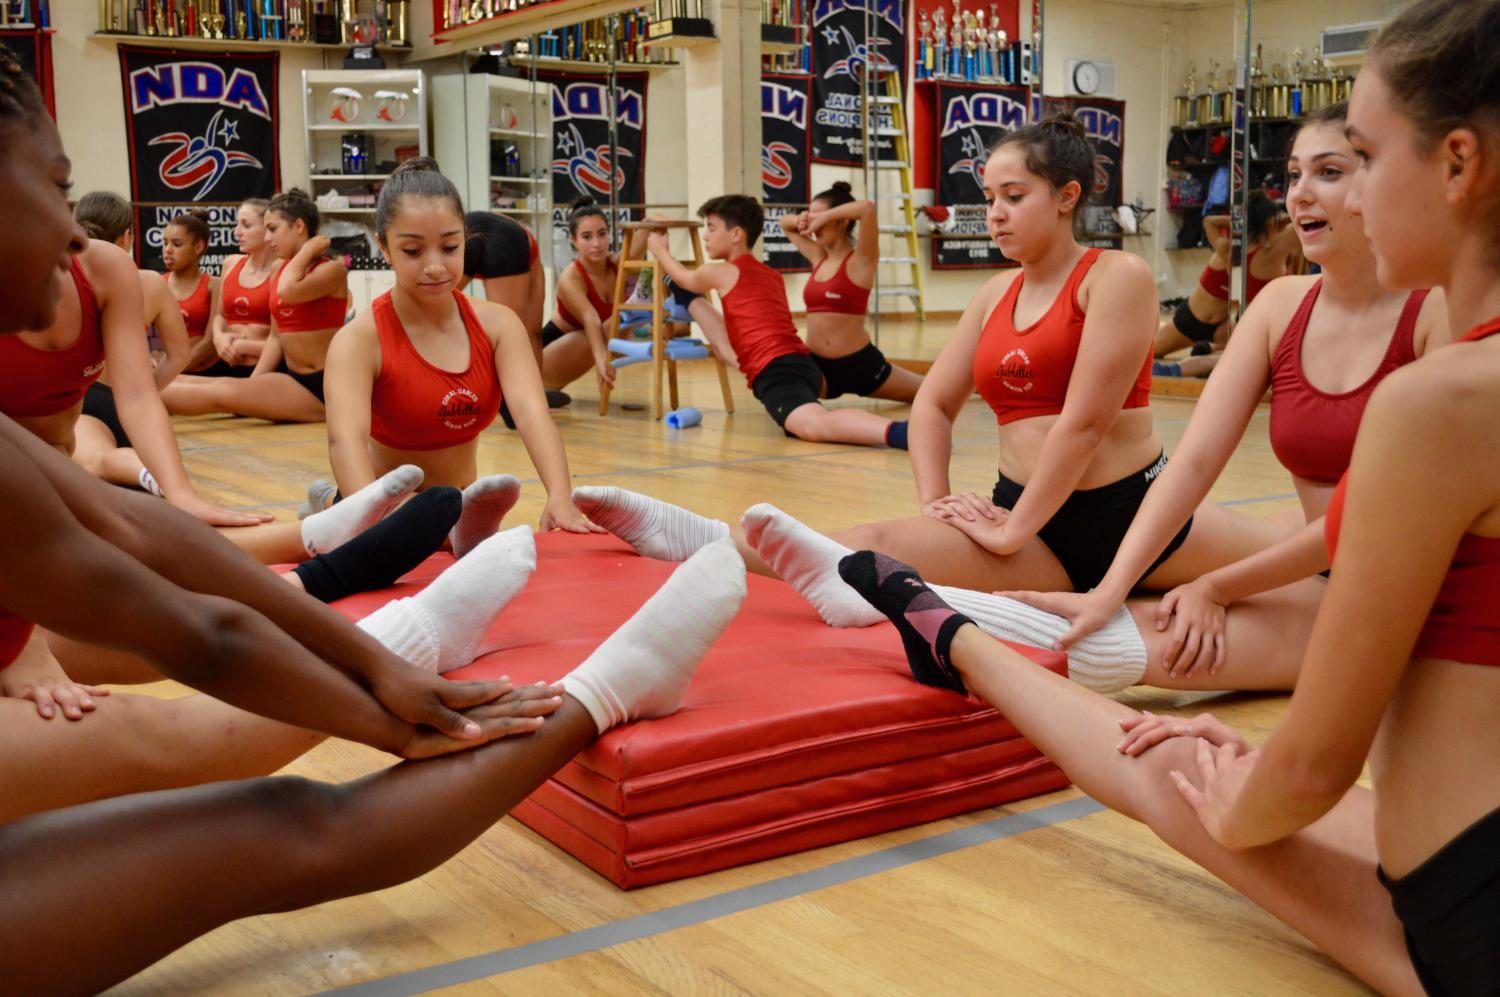 The Gablettes stretching